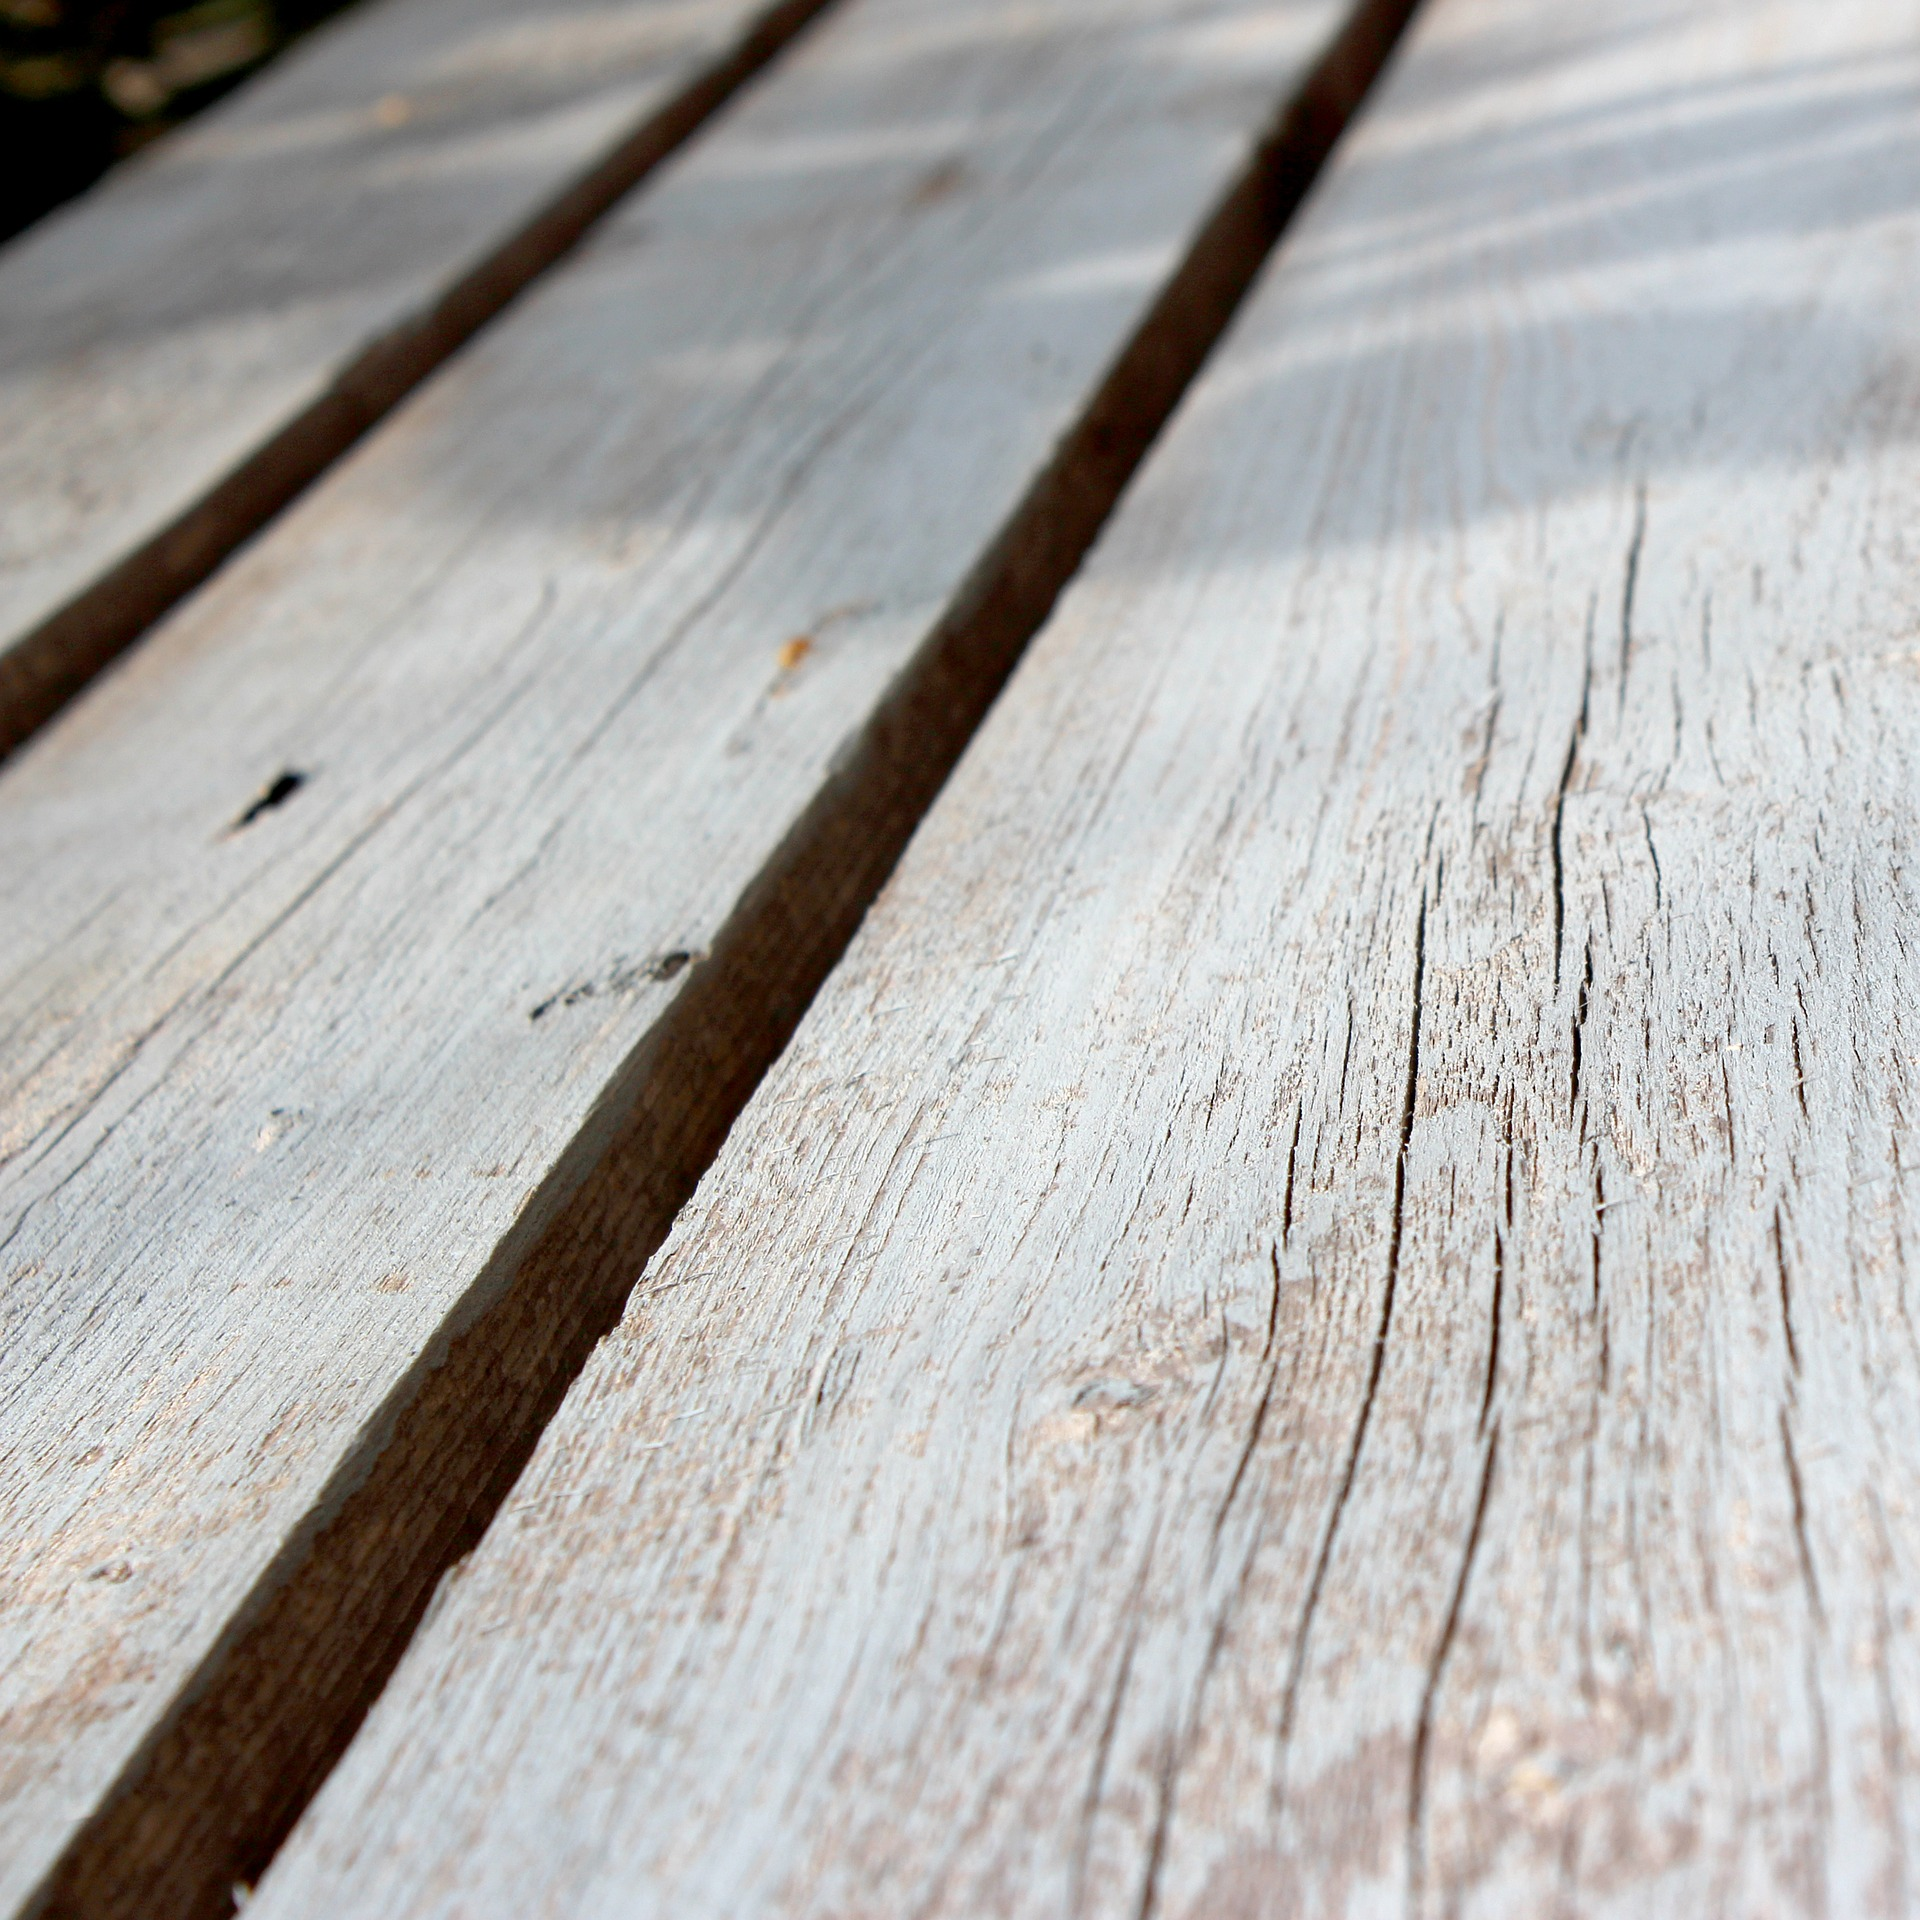 Choose the Right Deck Stain - Decks take a beating in Michigan weather